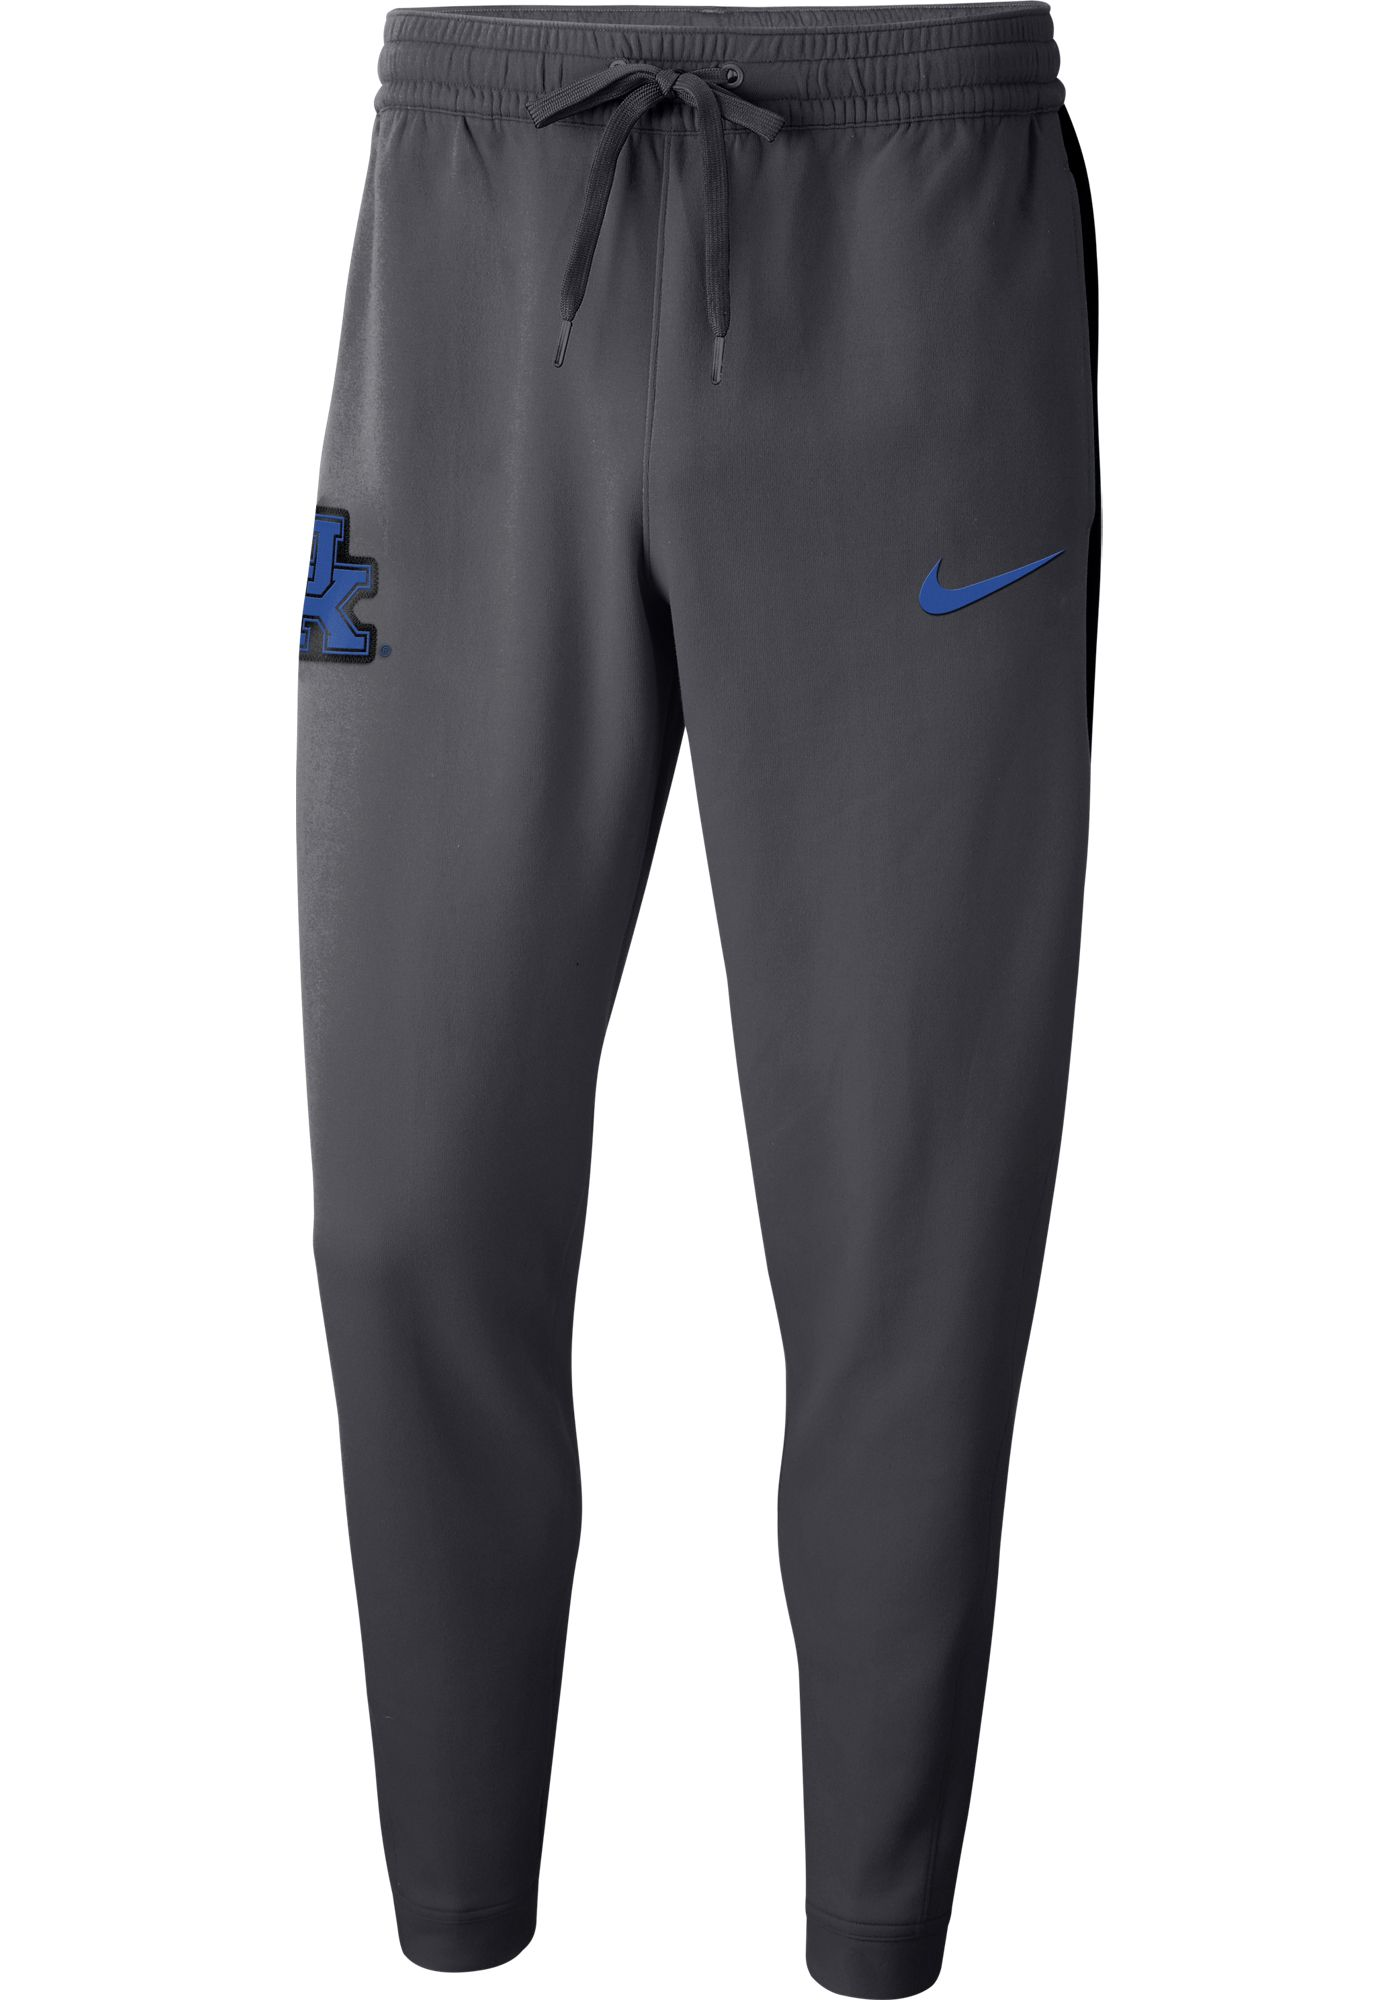 Nike Men's Kentucky Wildcats Grey Dri-FIT Showtime Basketball Fleece Pants